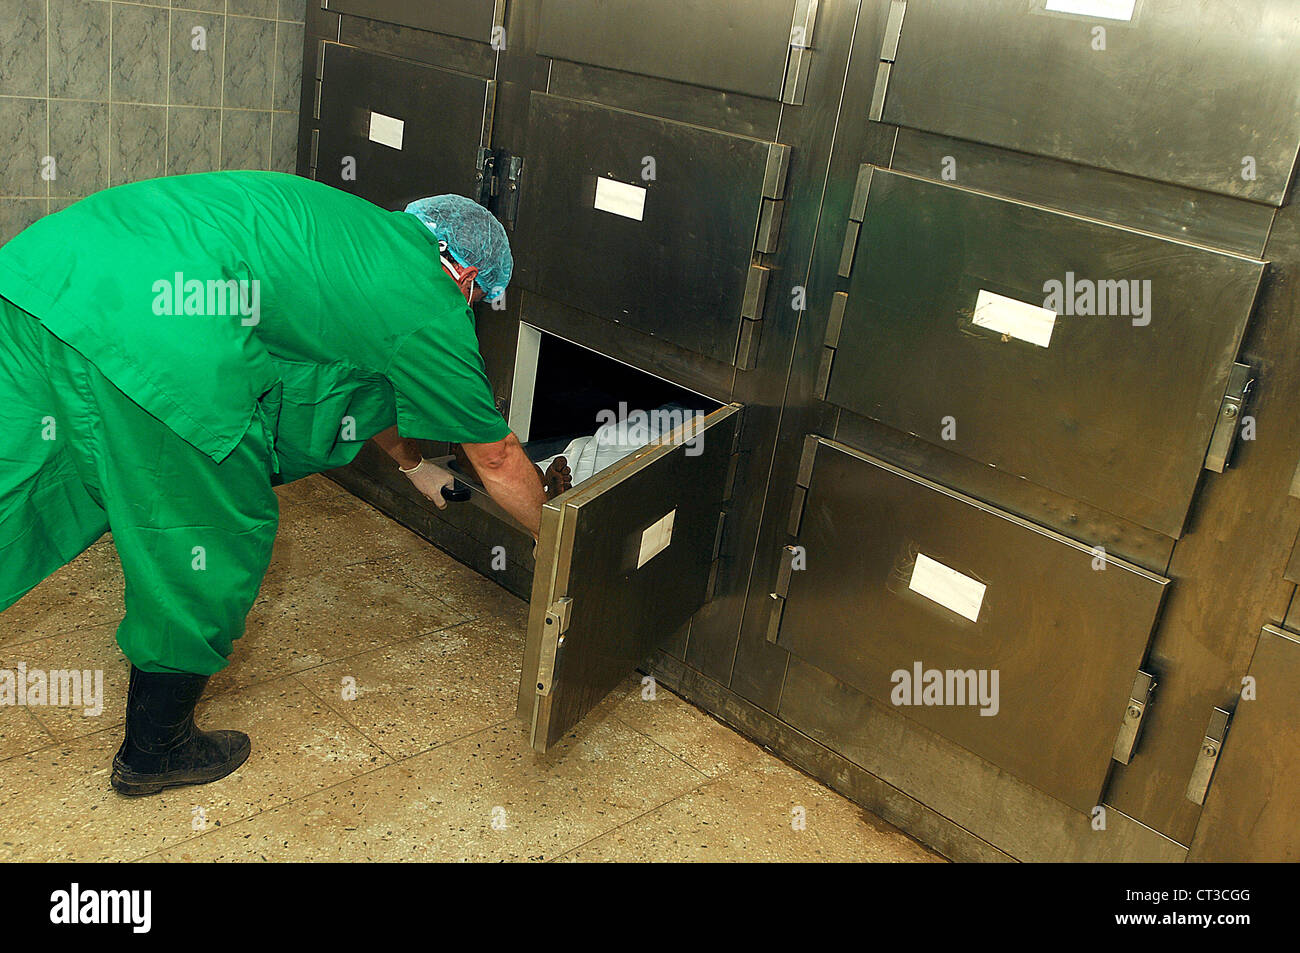 A mortuary technician places a human body in a cold storage facility. - Stock Image